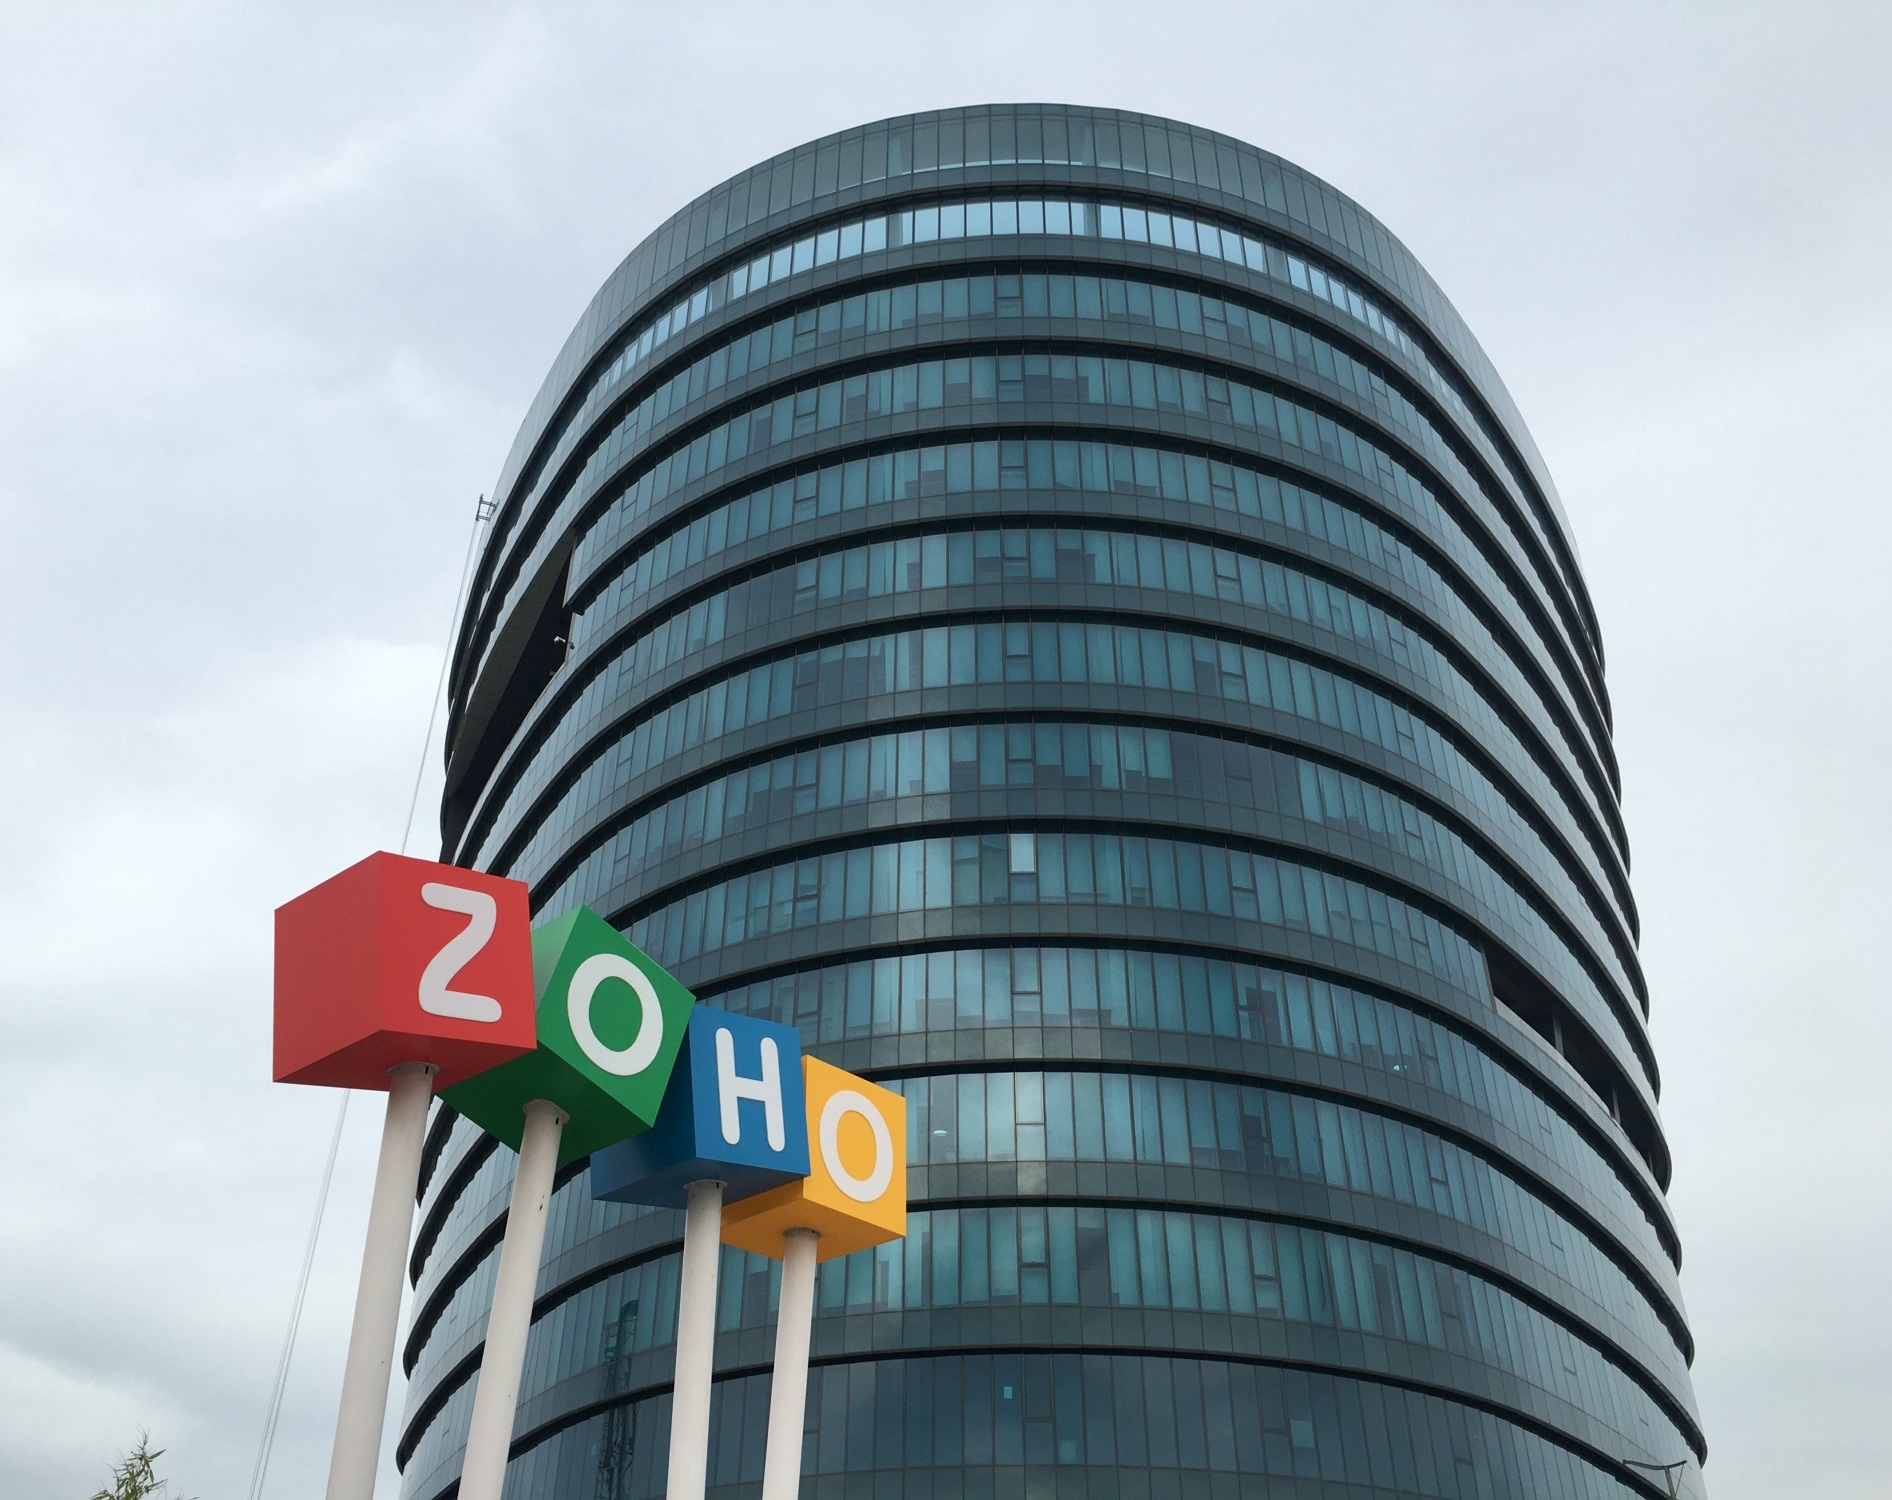 Zoho offers online invoicing solution free of charge to SMEs